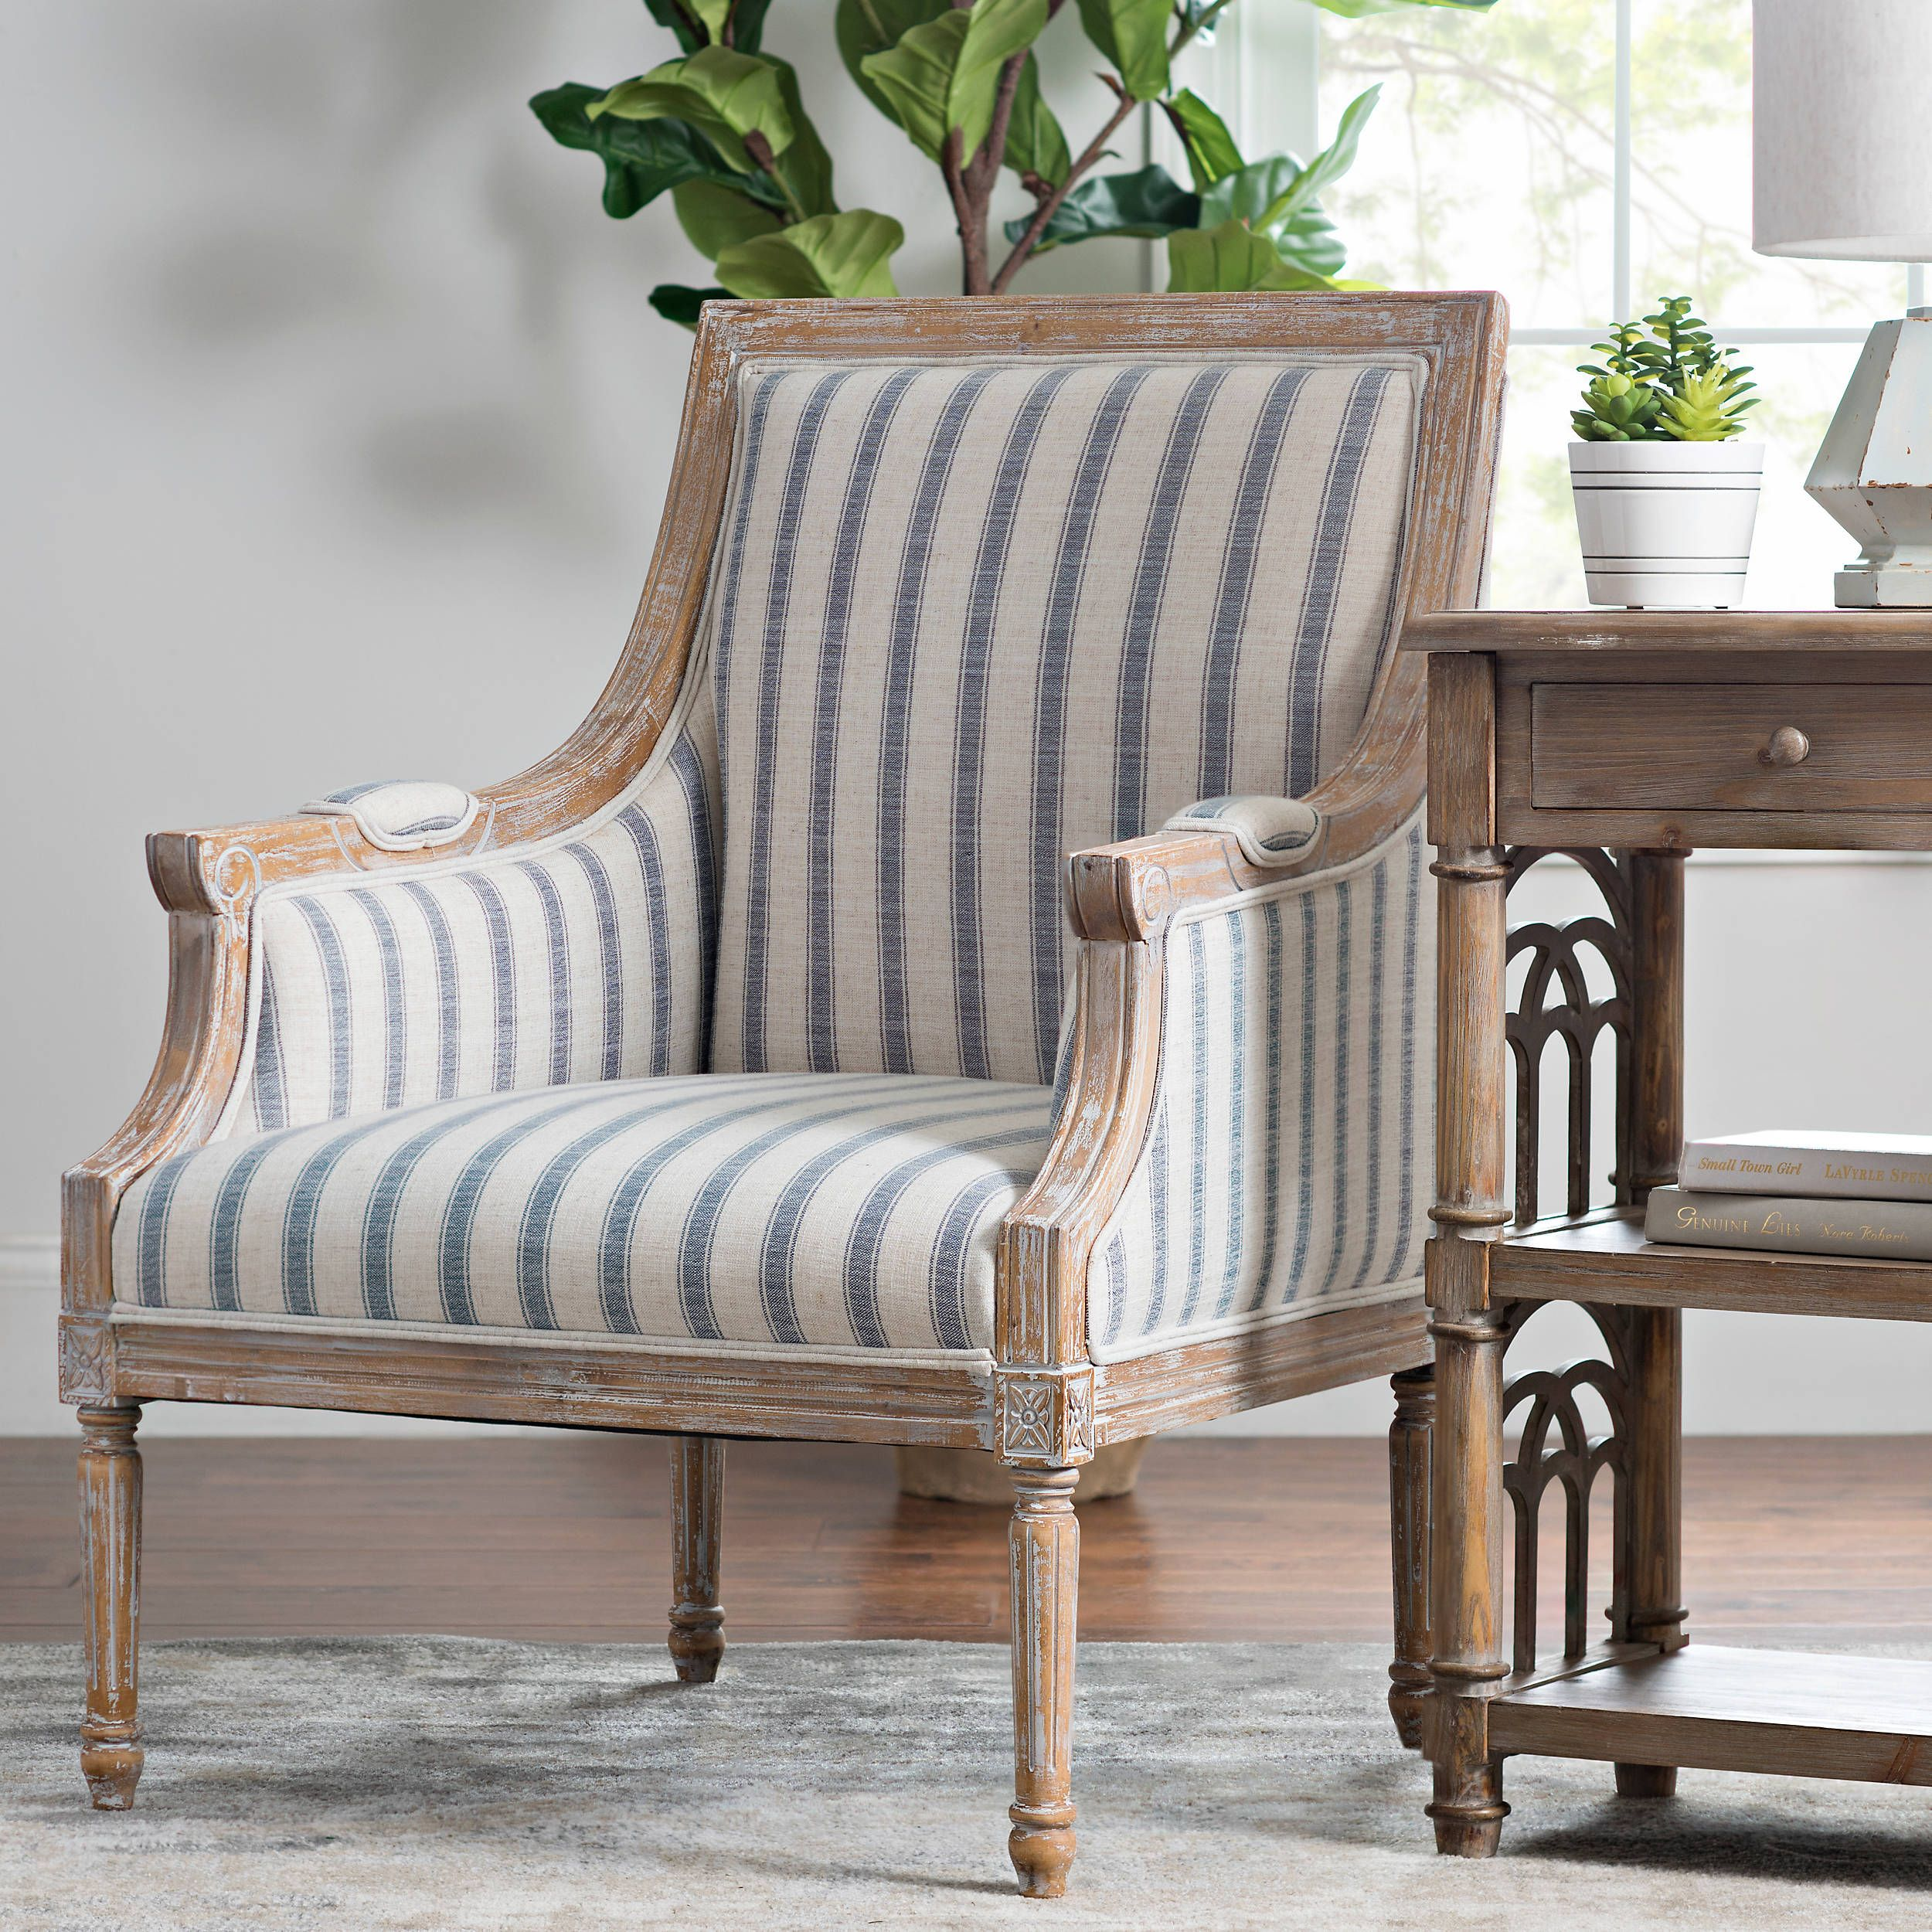 Mckenna Blue Striped Accent Chair Kirklands Blue Accent Chairs Stripe Accent Chair Accent Chairs For Living Room